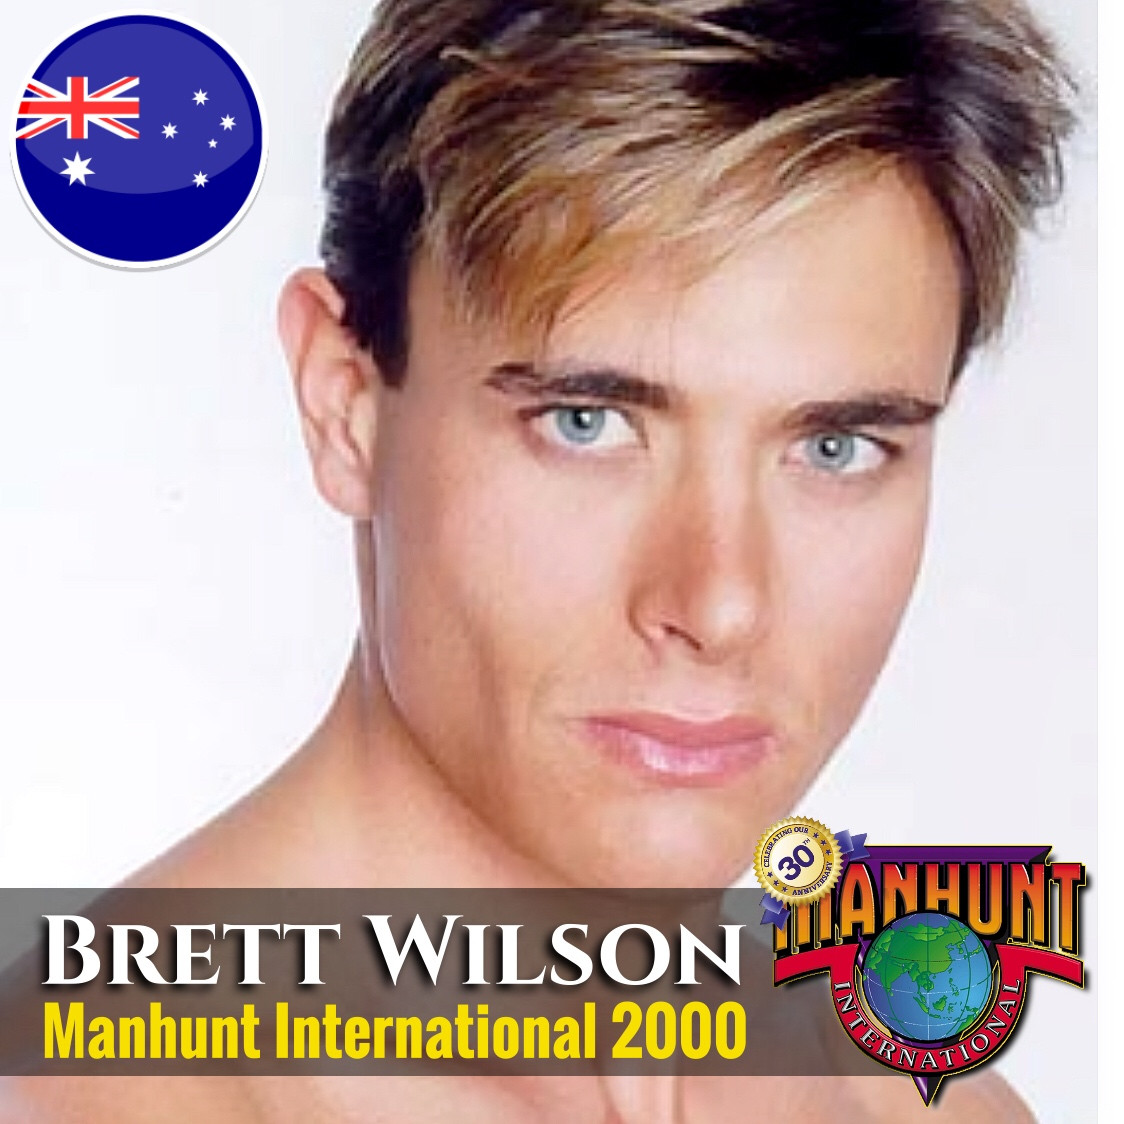 brett wilson, manhunt international 2000. Qg10tg10